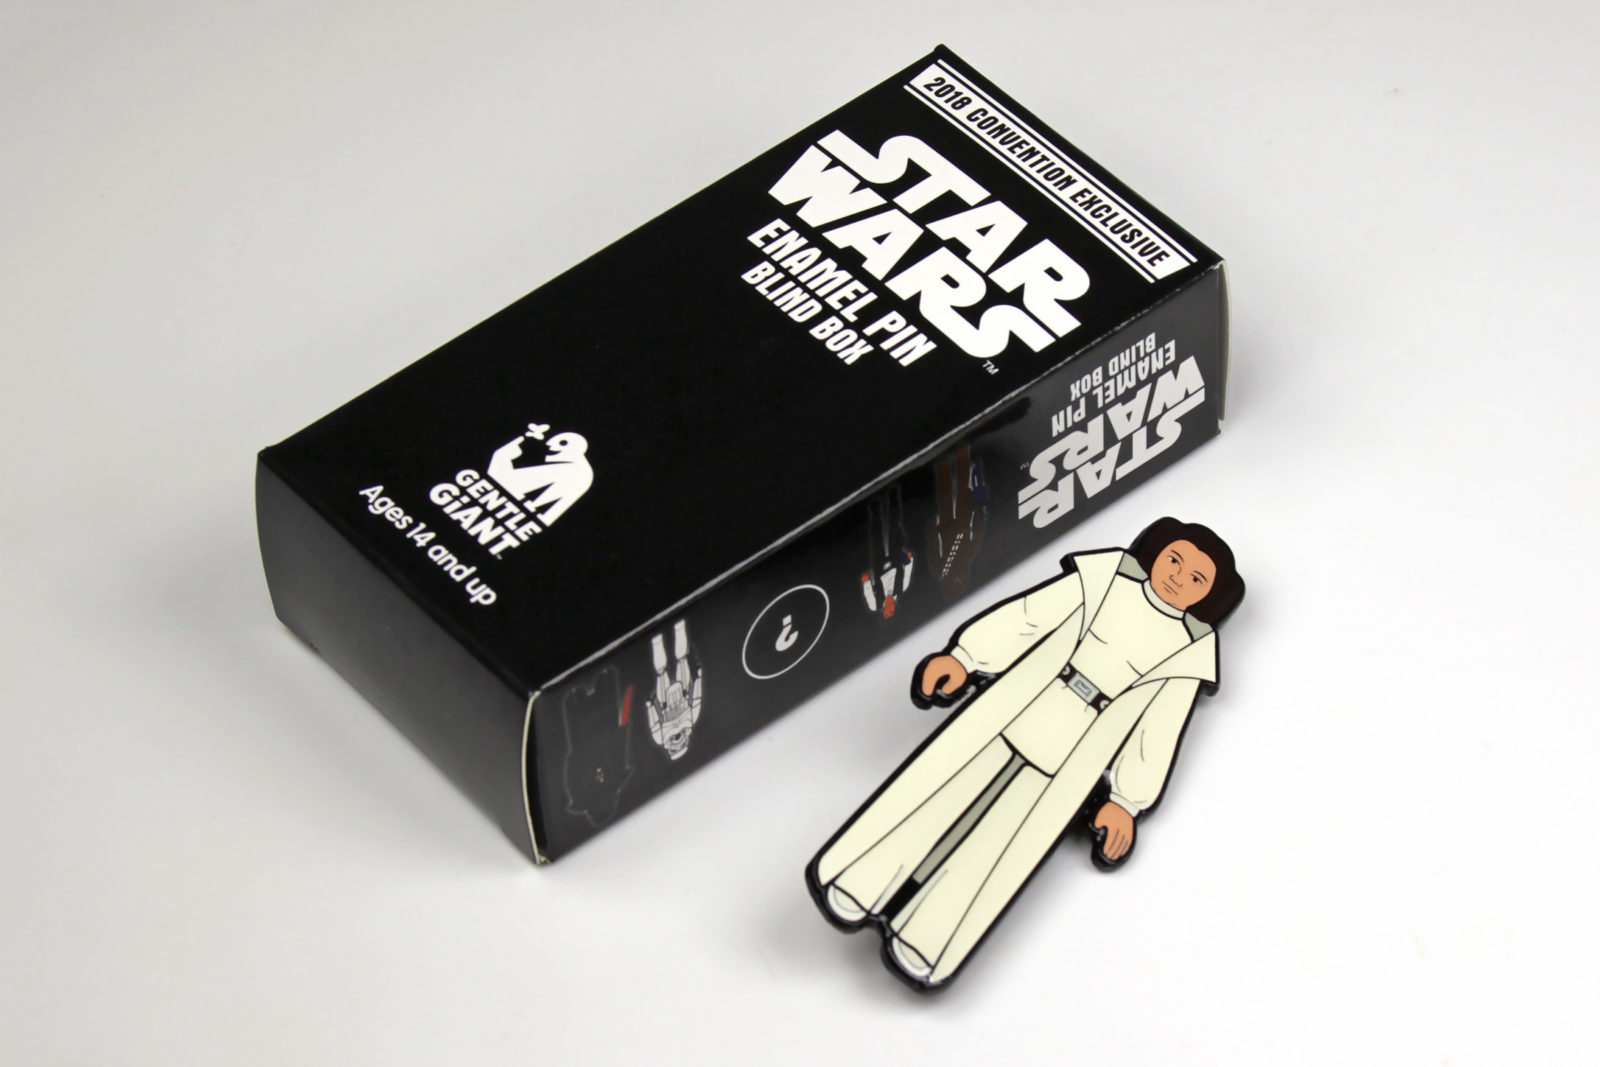 Princess Leia Vintage Action Figure Pin, by Gentle Giant